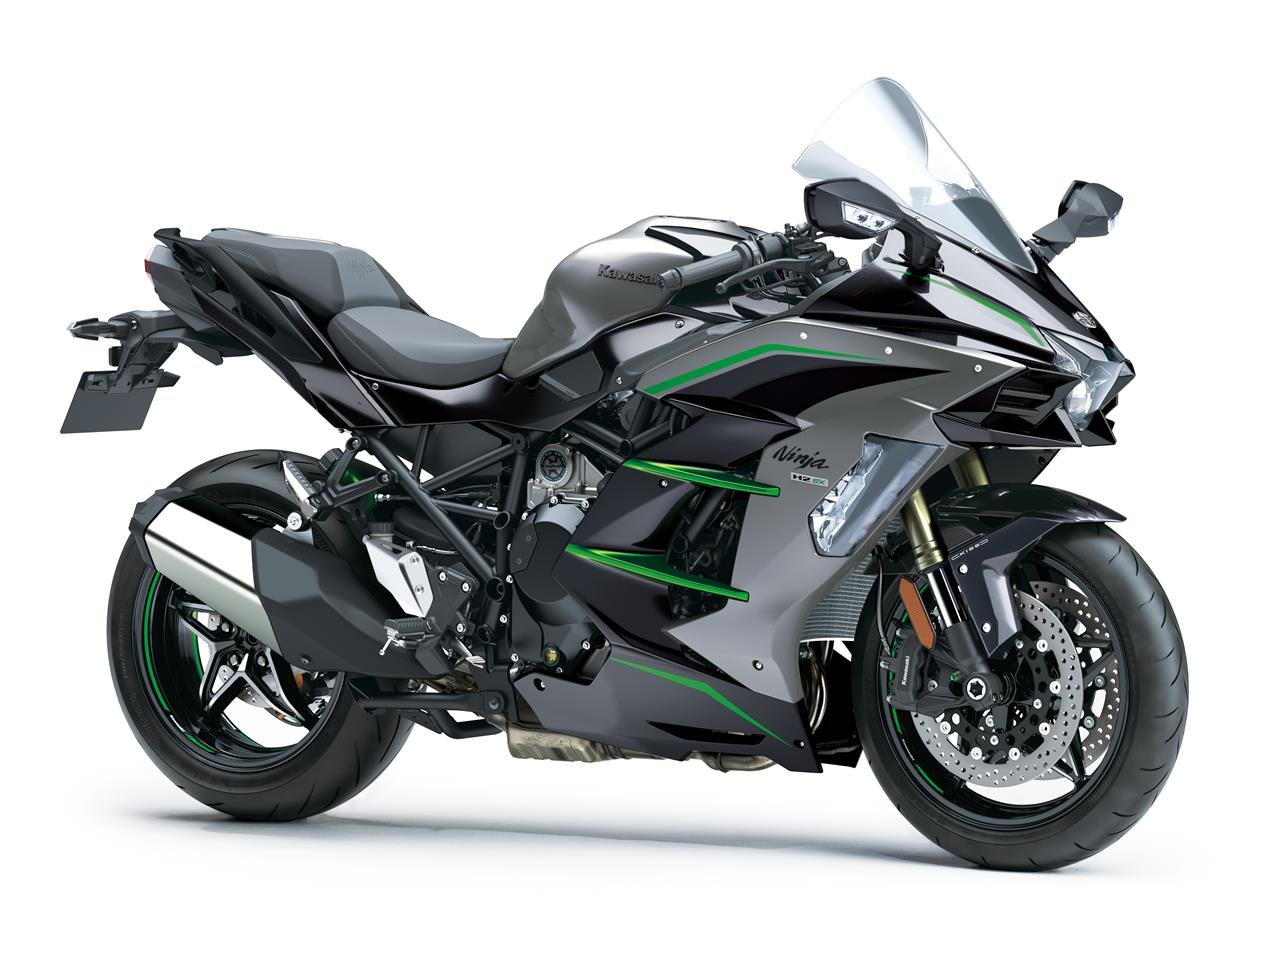 New 2020 Kawasaki Ninja H2 SX SE*£1,000 PAID, FREE Delivery  For Sale (picture 1 of 6)